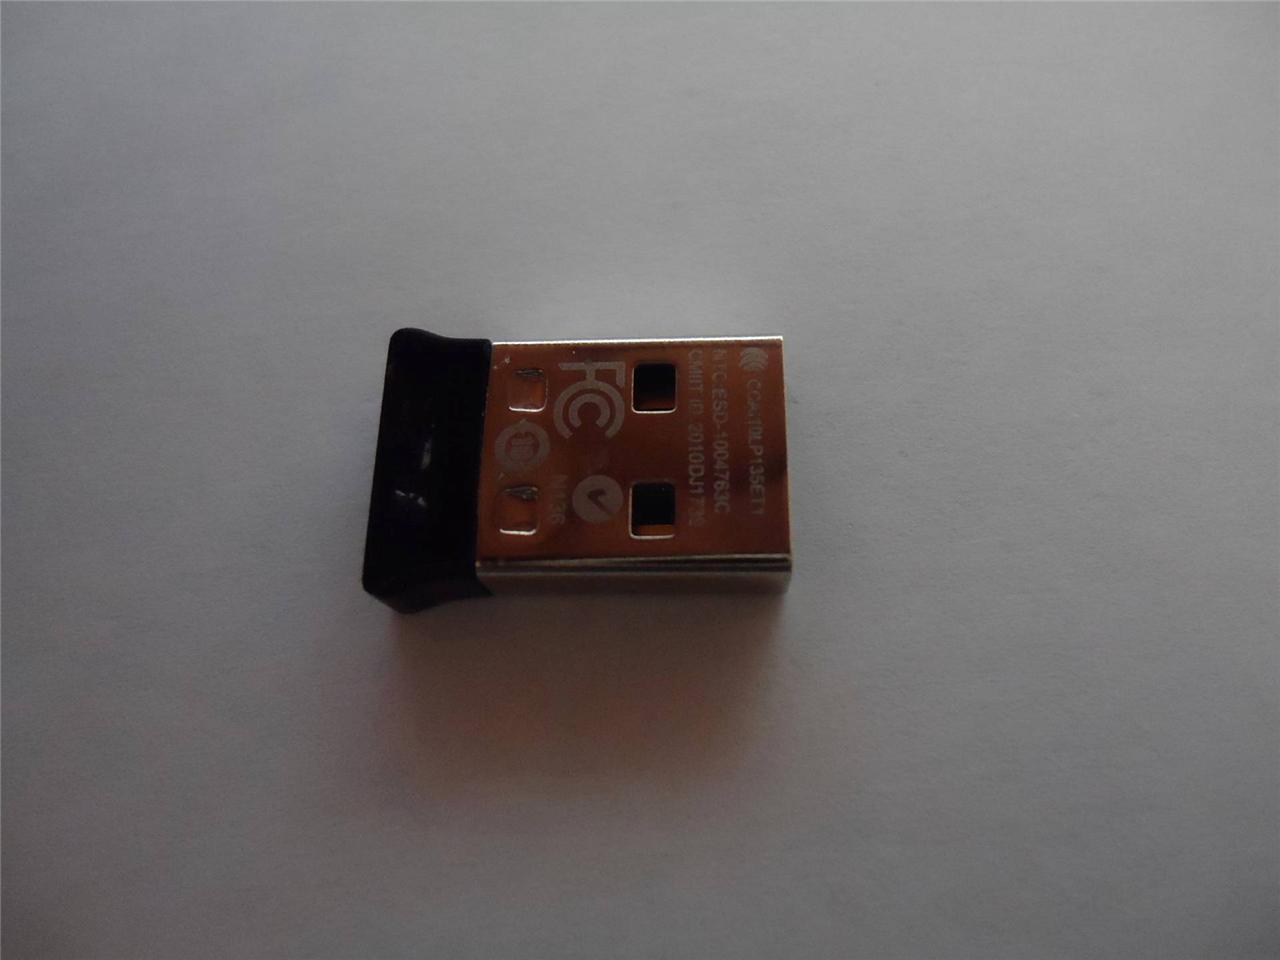 Acer DGRFEO HID USB Composite Wireless USB Receiver Rev 0